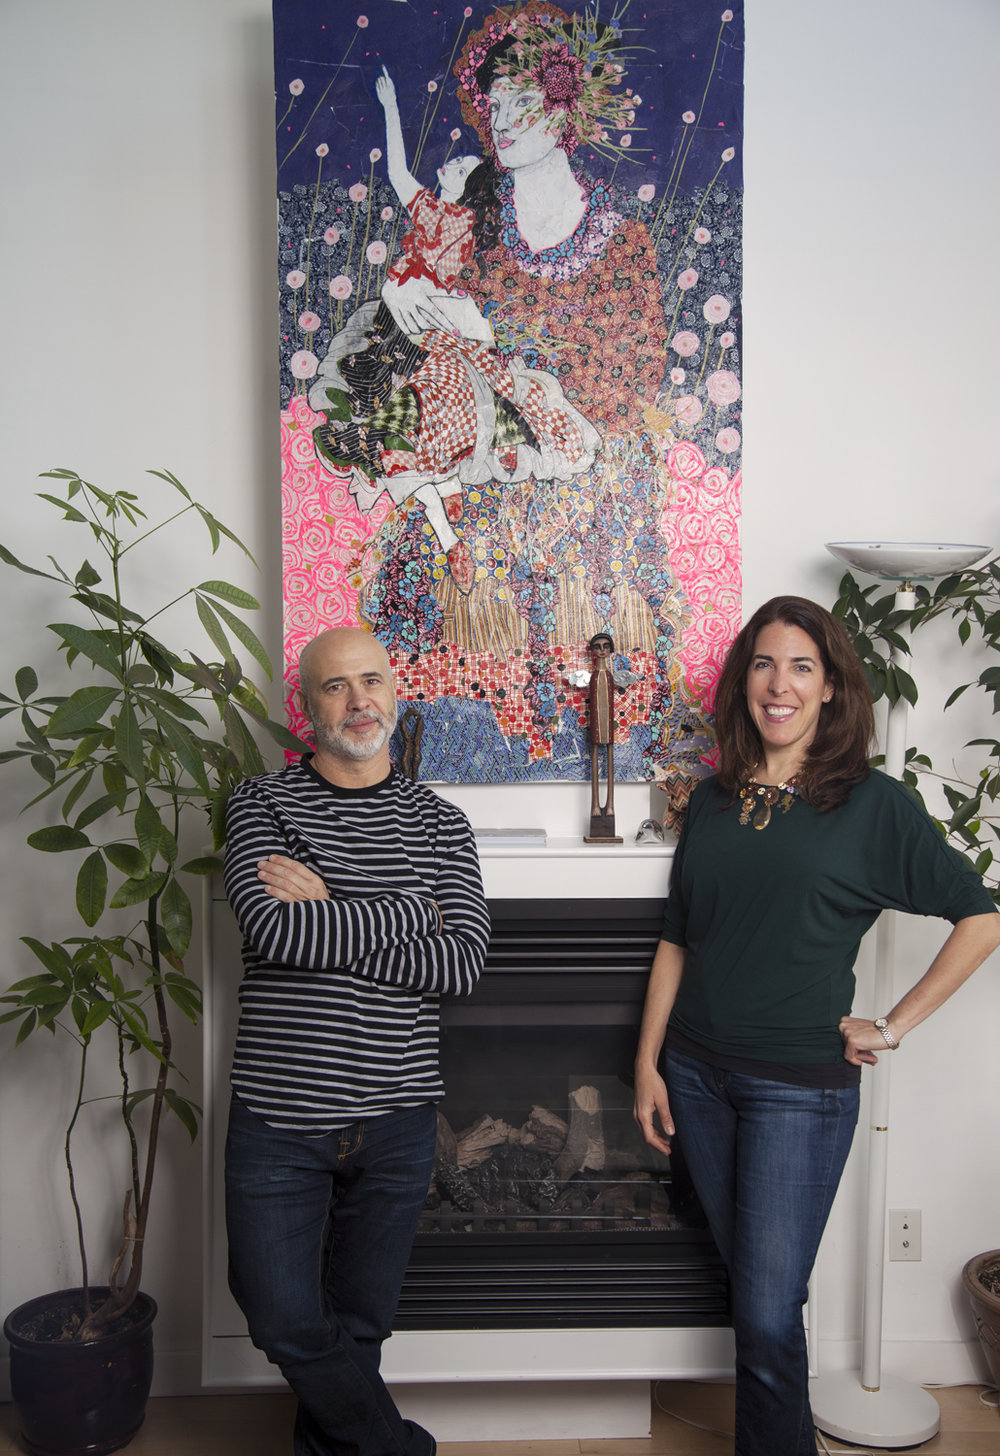 Frank Desimini and Alexa Samuels, Founder of Mercartto